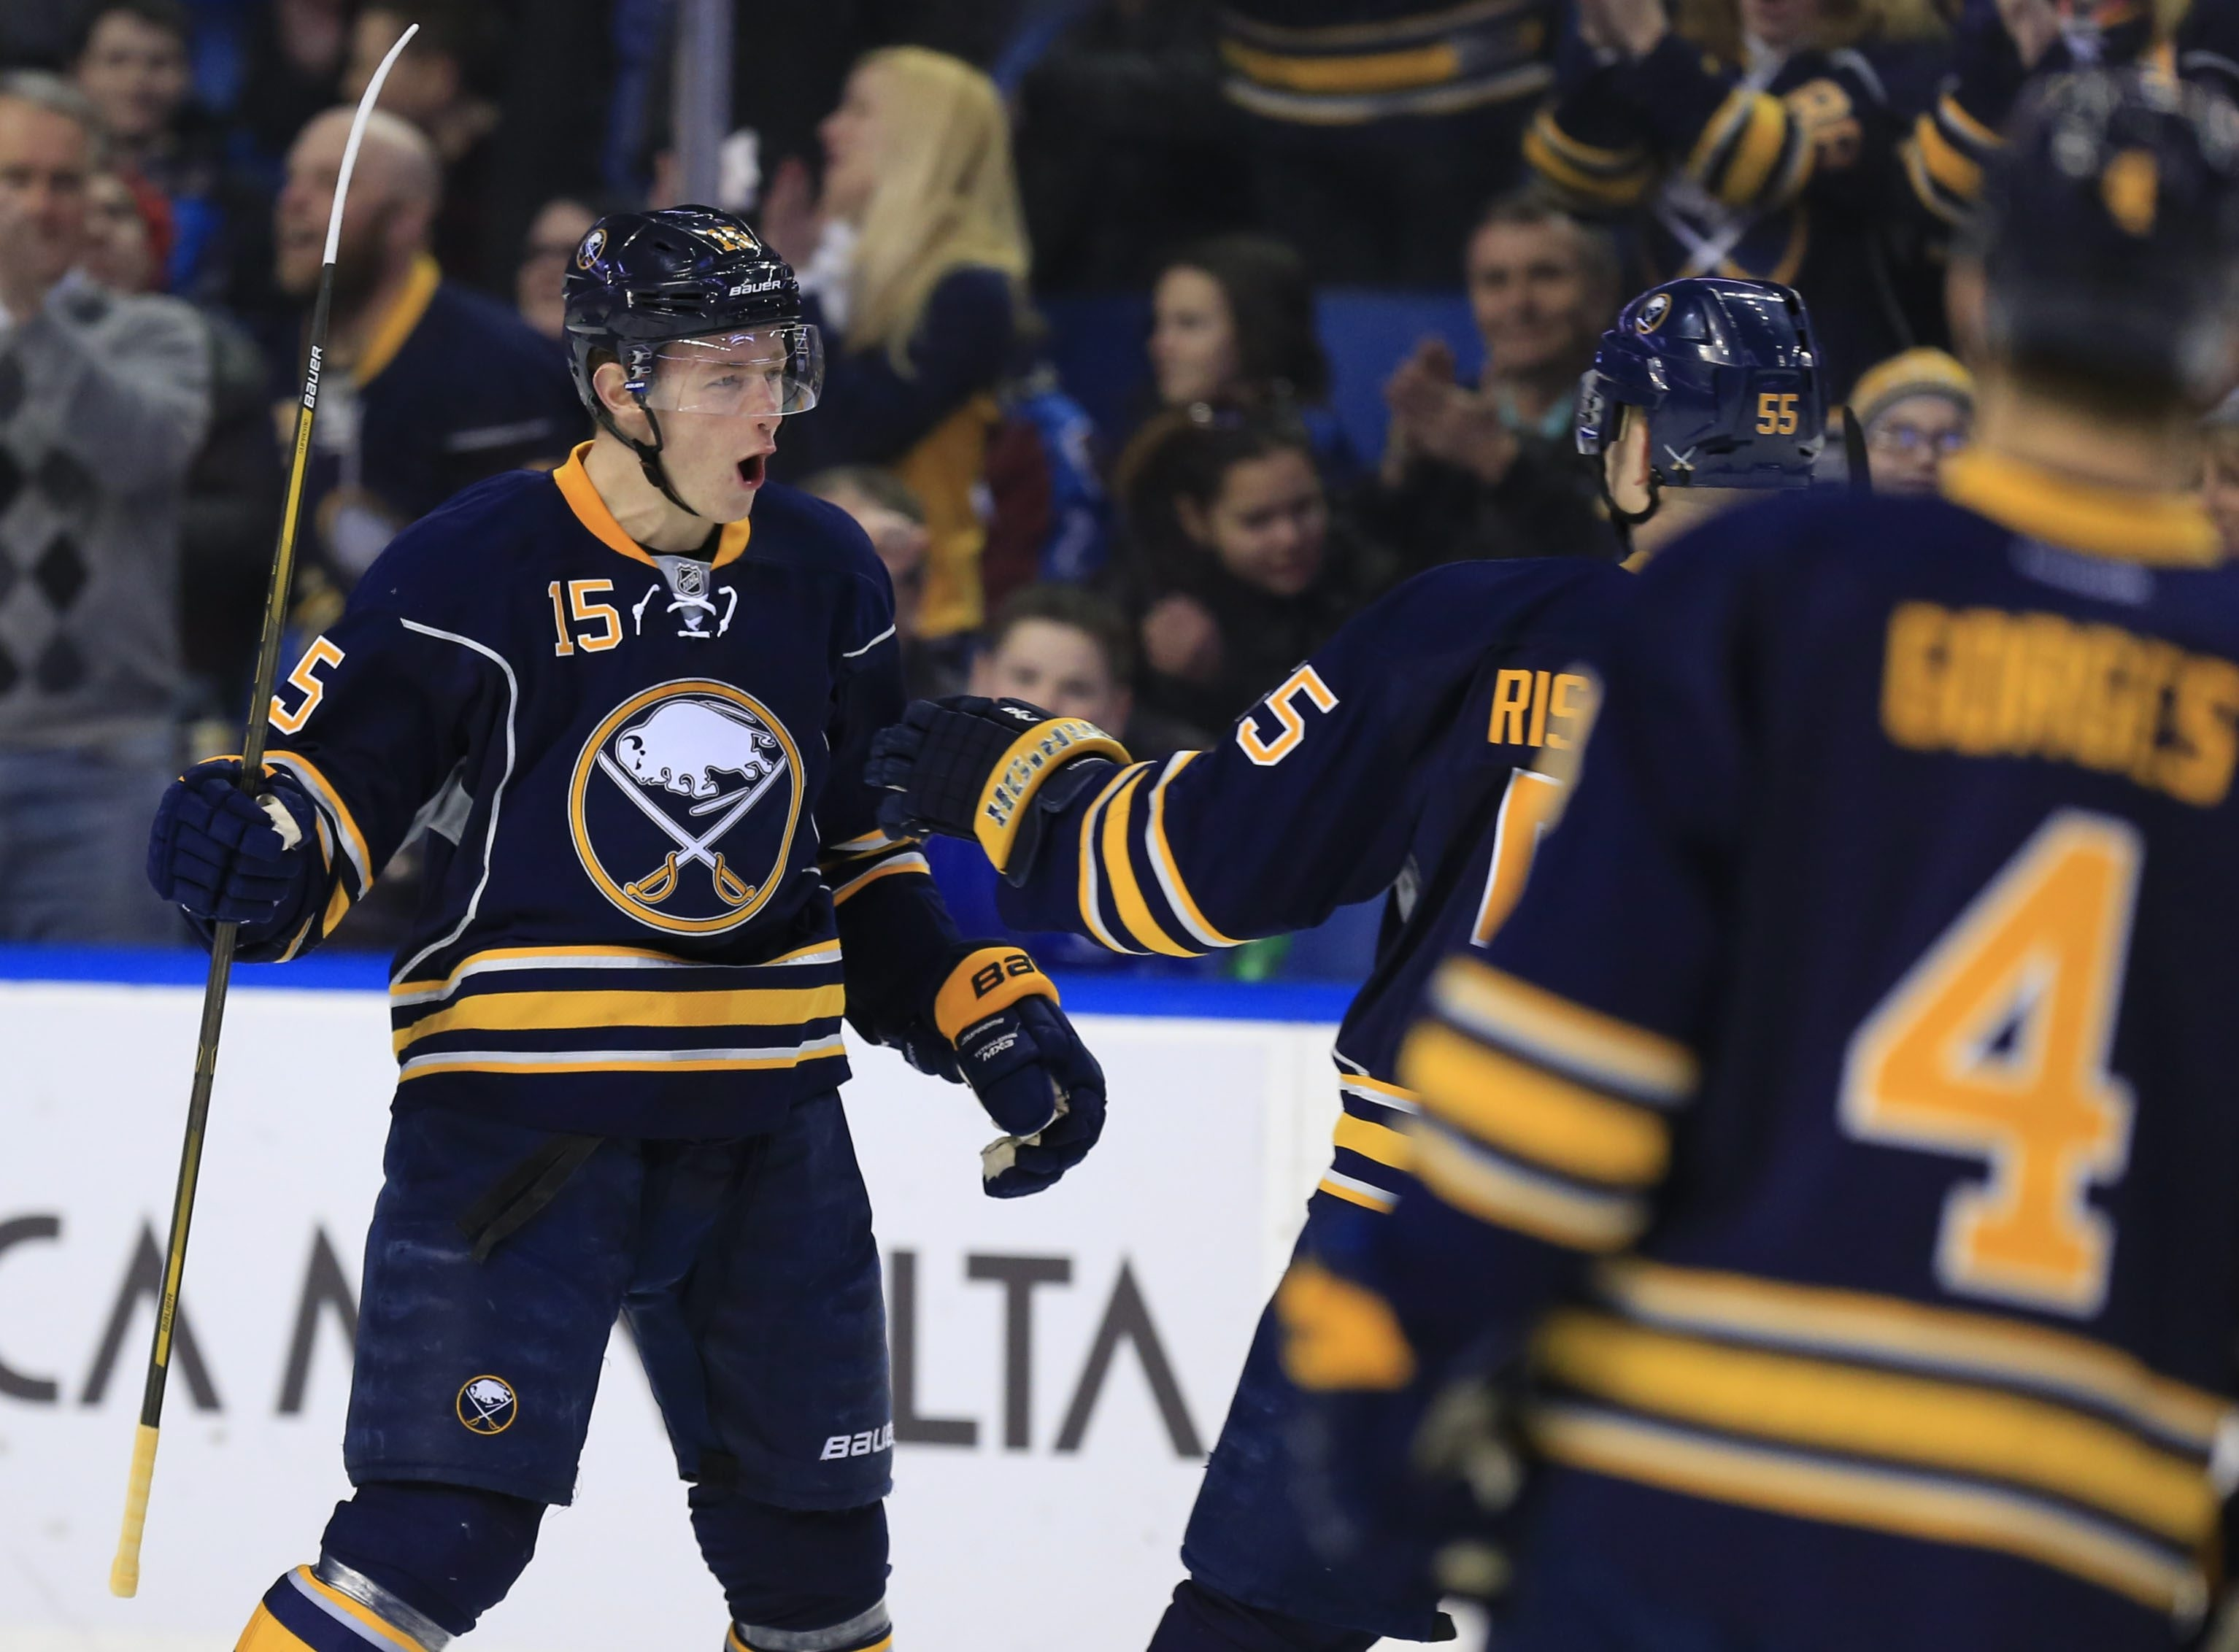 Jack Eichel celebrates after scoring on a screened shot to give the Sabres a 1-0 lead 2:02 into the first period on Sunday. Buffalo never trailed.